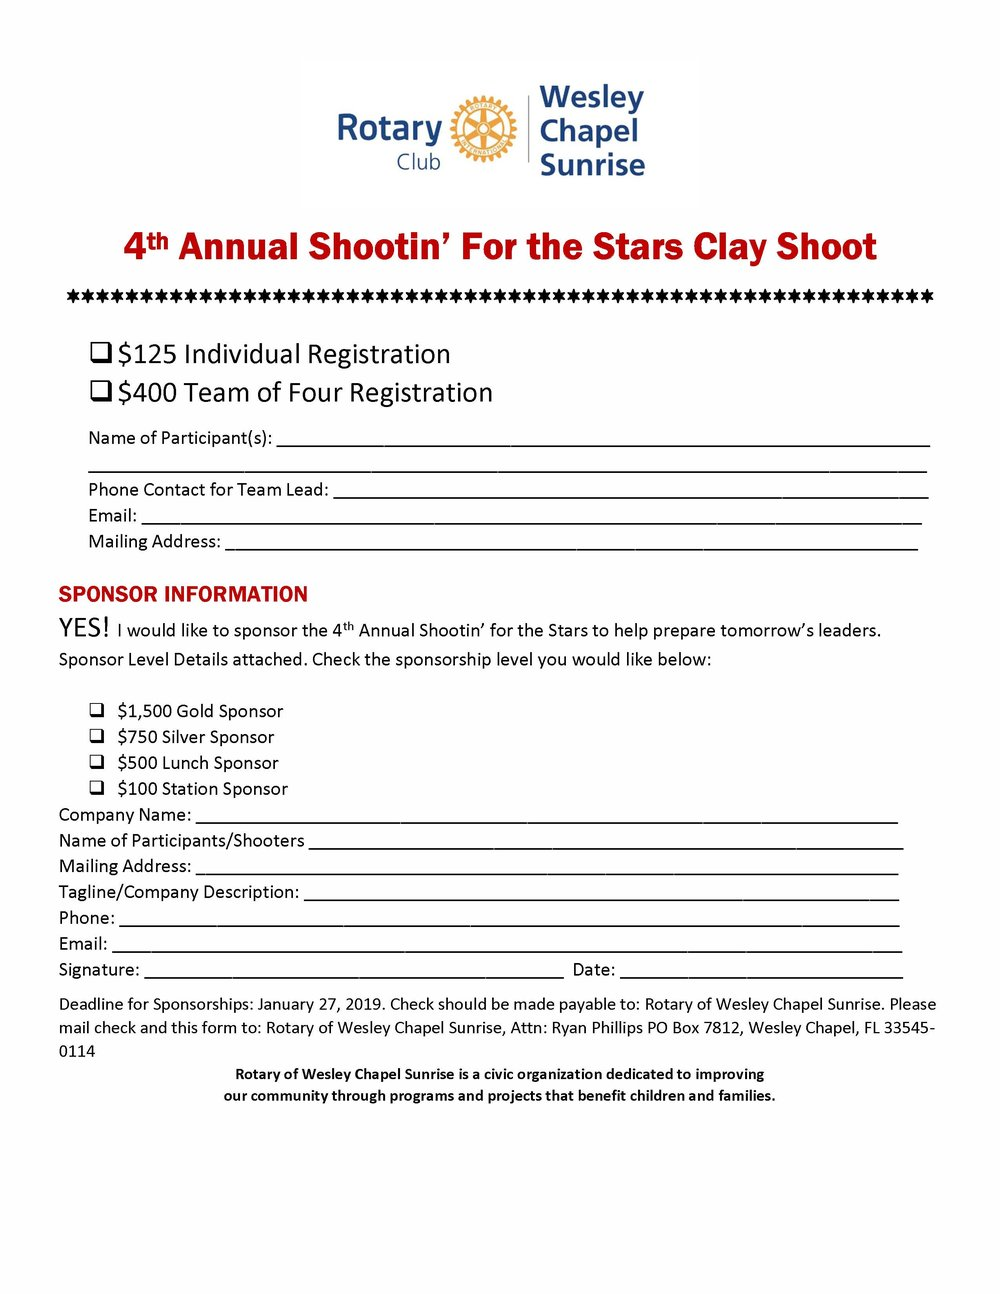 2019 shootin for the stars sponsorship form_Page_2.jpg